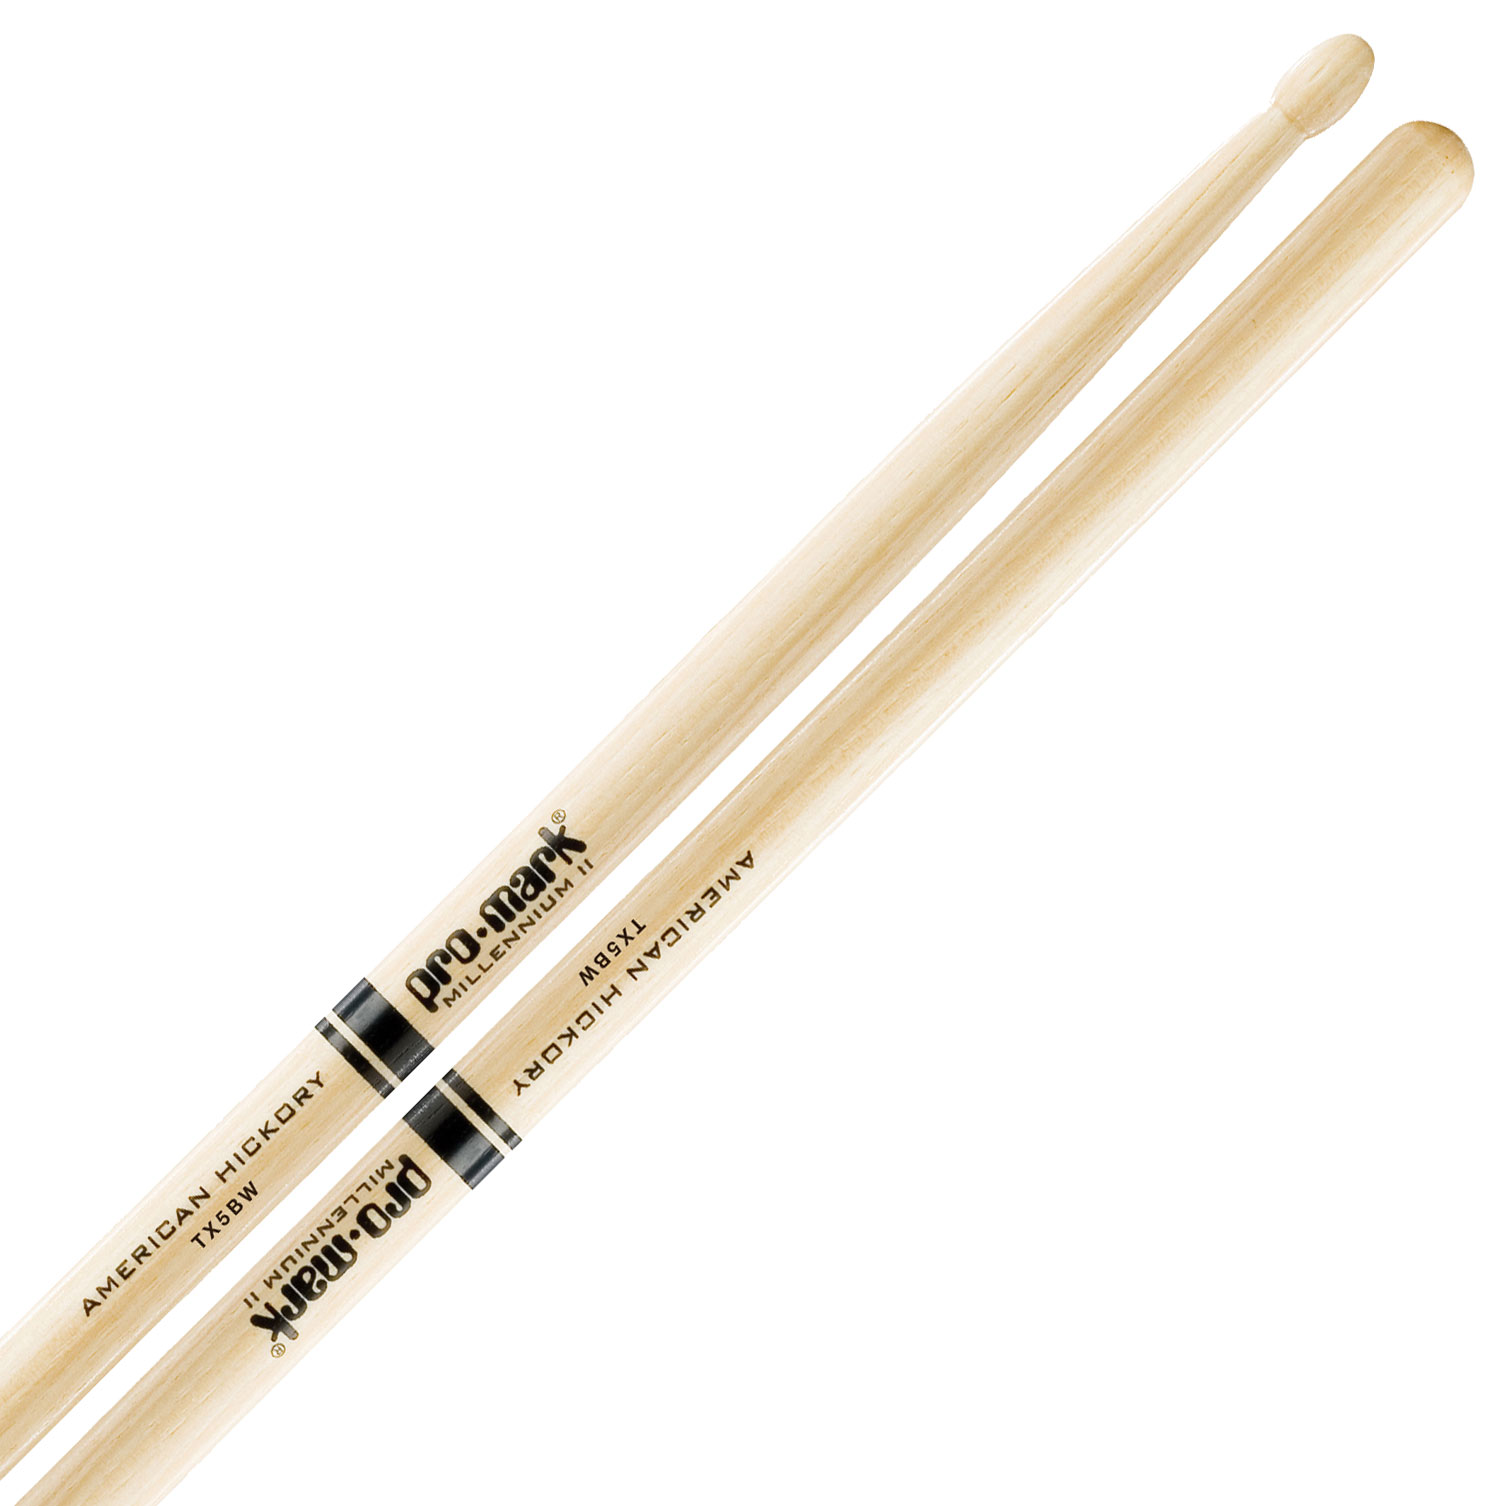 Promark American Hickory 5B Wood Tip Drumsticks